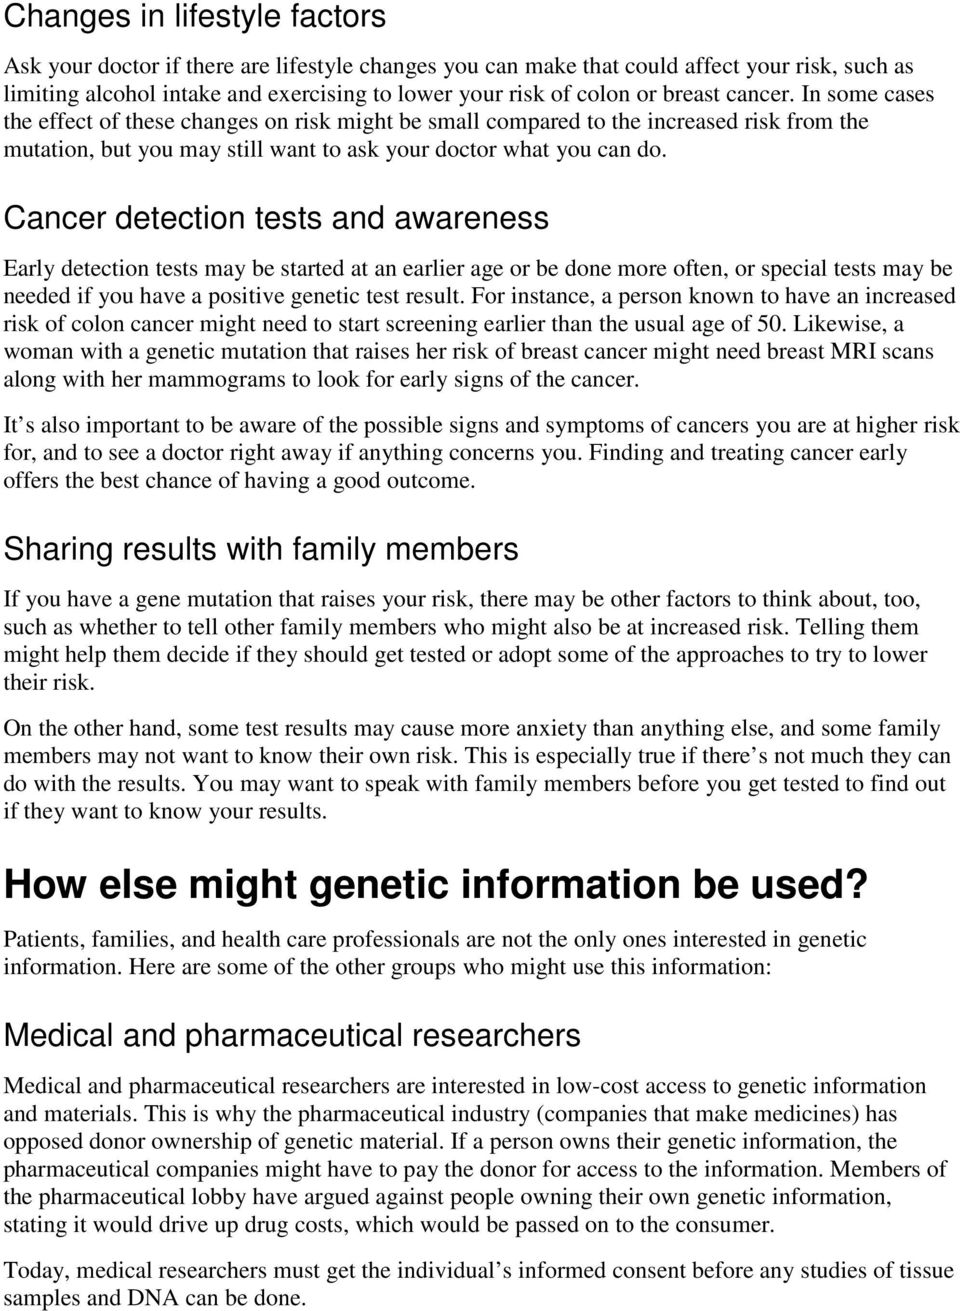 Cancer detection tests and awareness Early detection tests may be started at an earlier age or be done more often, or special tests may be needed if you have a positive genetic test result.